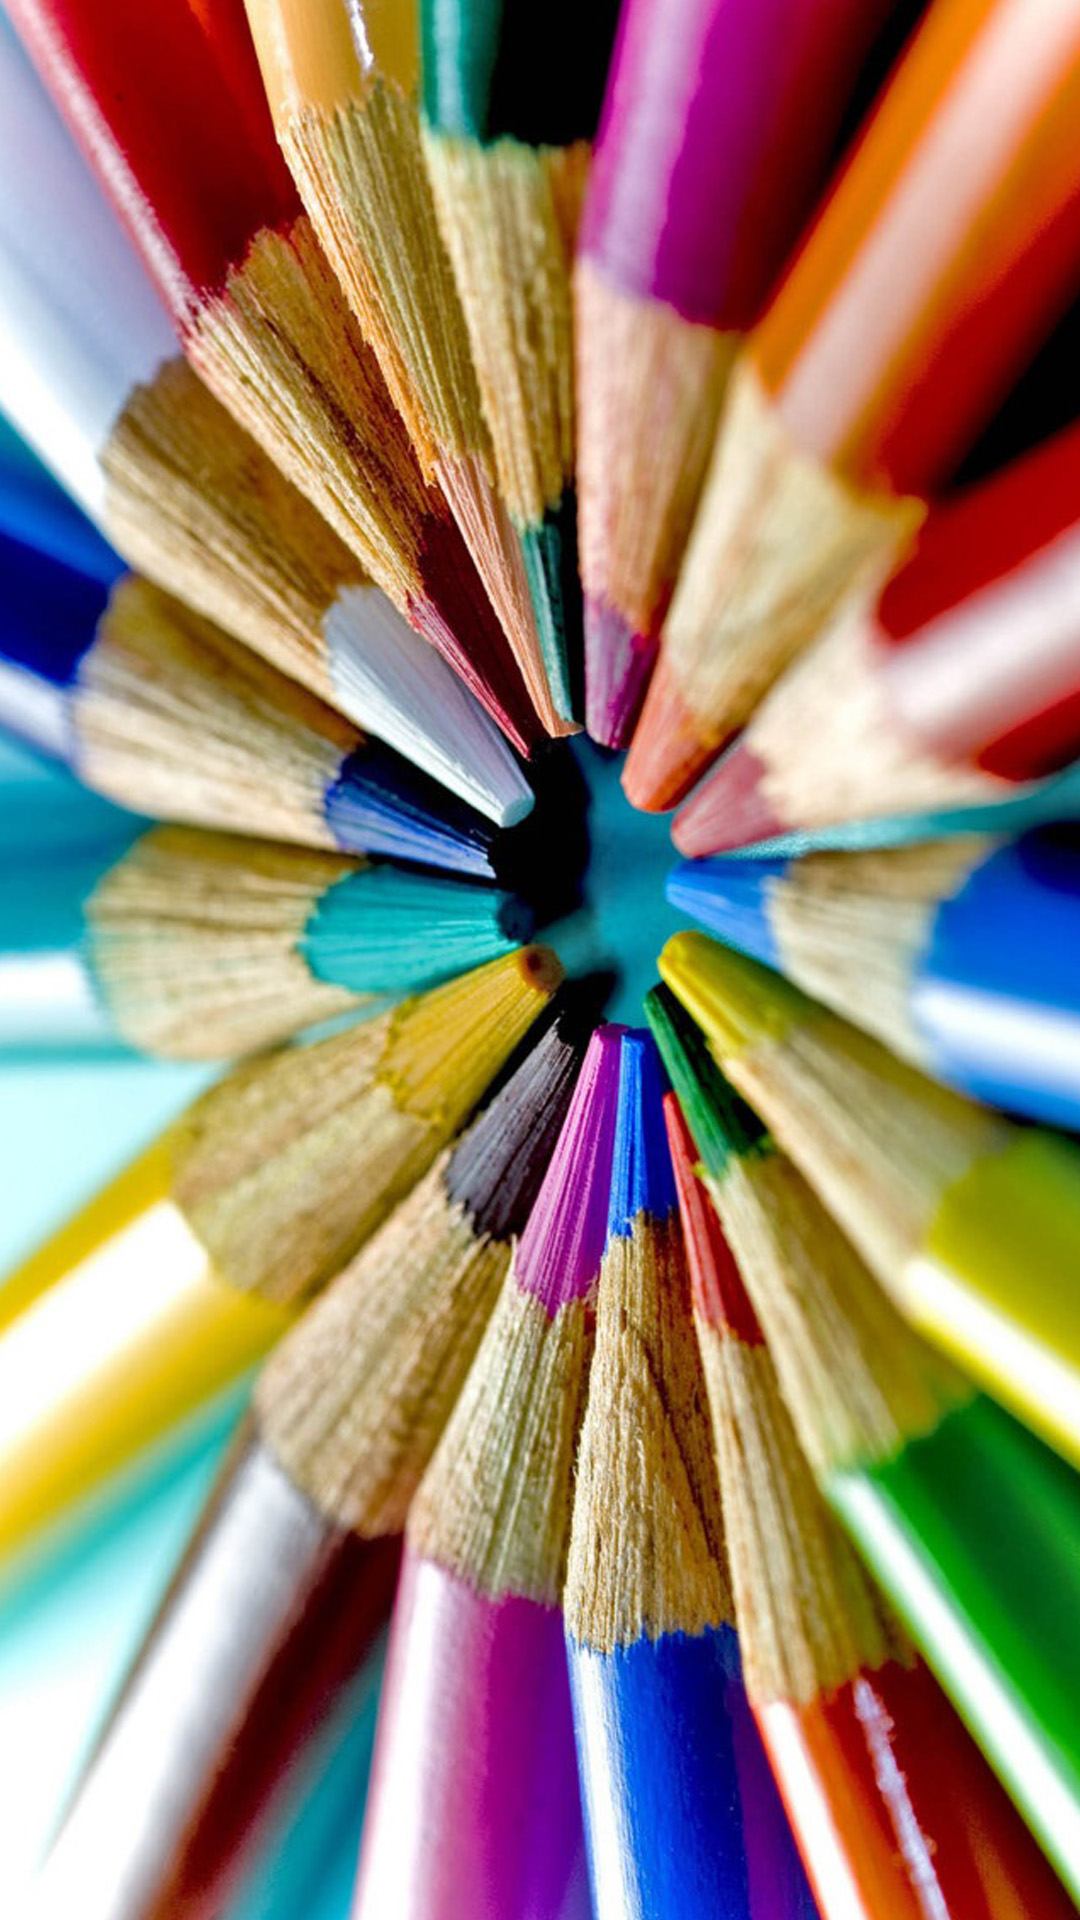 Colorful pencils-macro